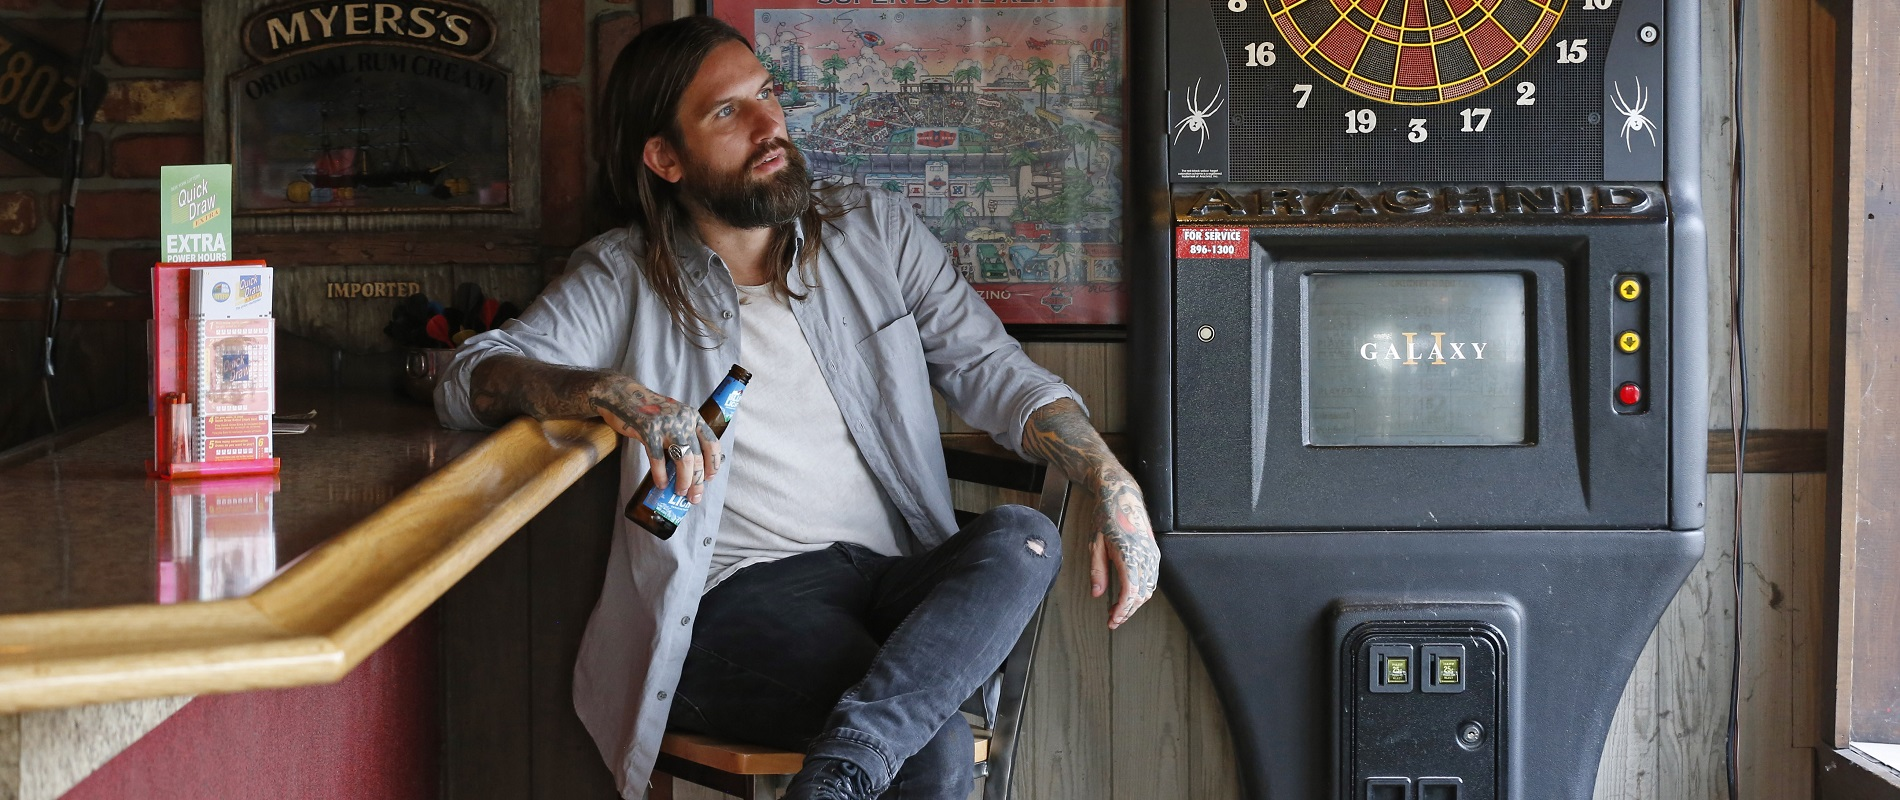 Every Time I Die front-man Keith Buckley's second novel, 'Watch,' will be available Tuesday. (Robert Kirkham/Buffalo News)